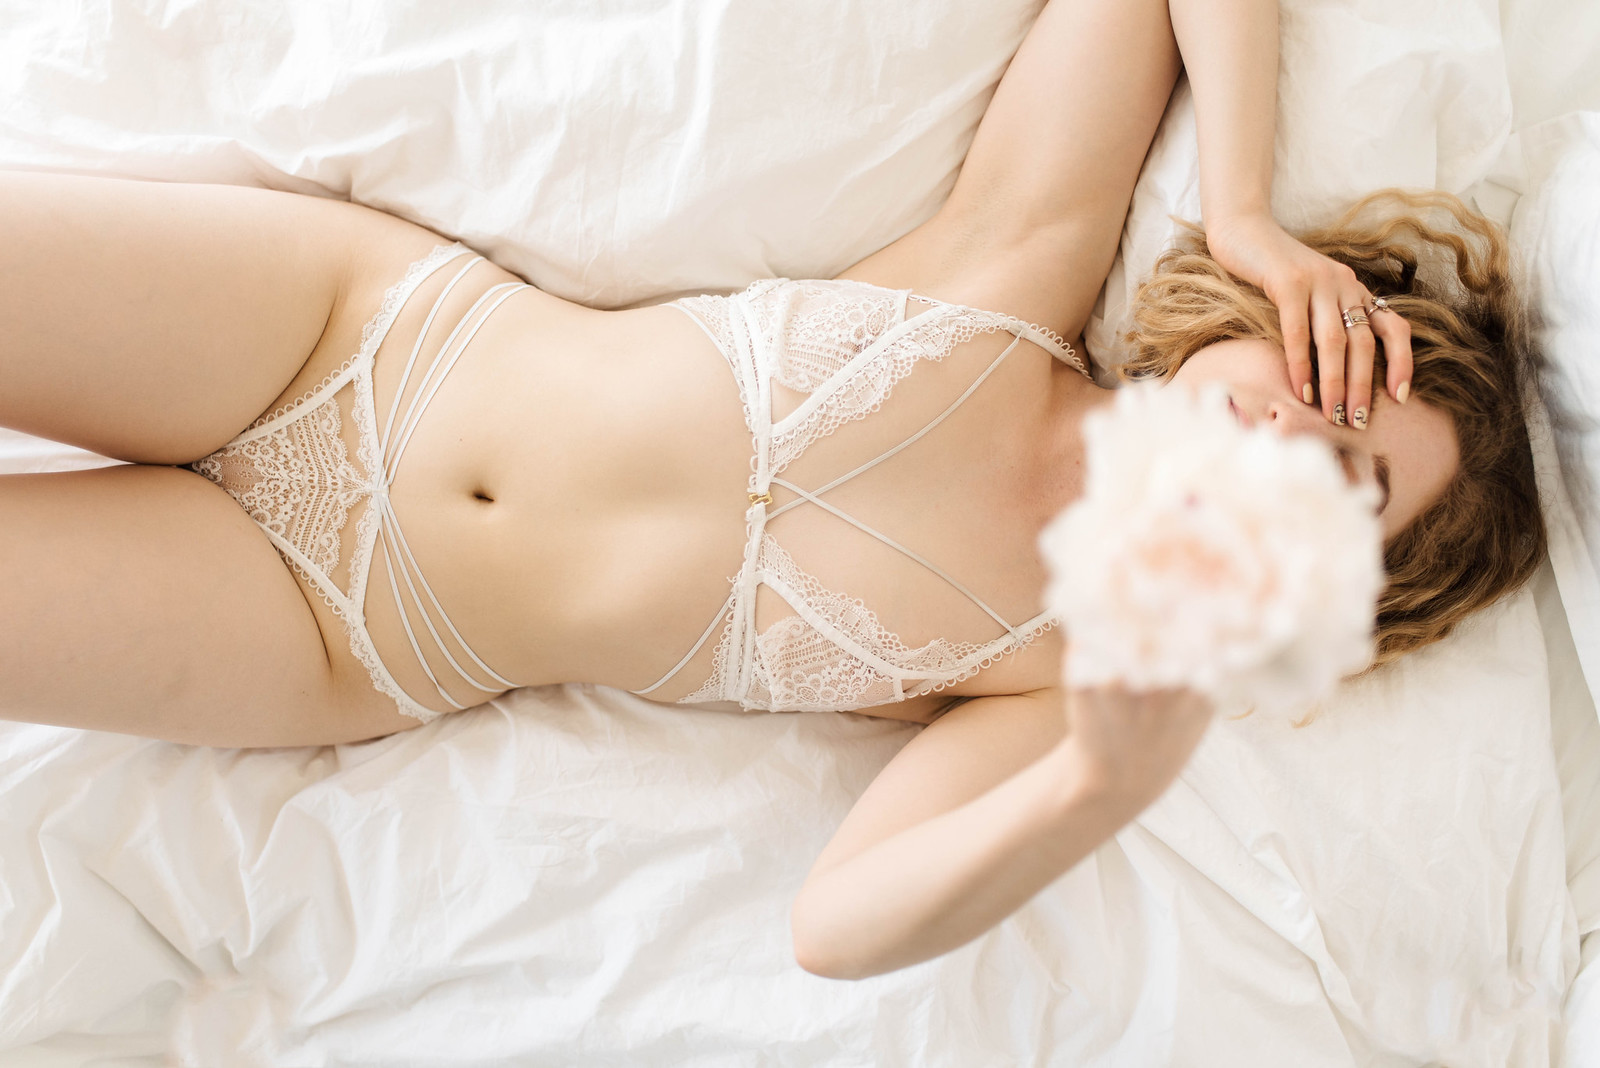 For Love and Lemons White Lace Lingerie Boudoir on juliettelaura.blogspot.com